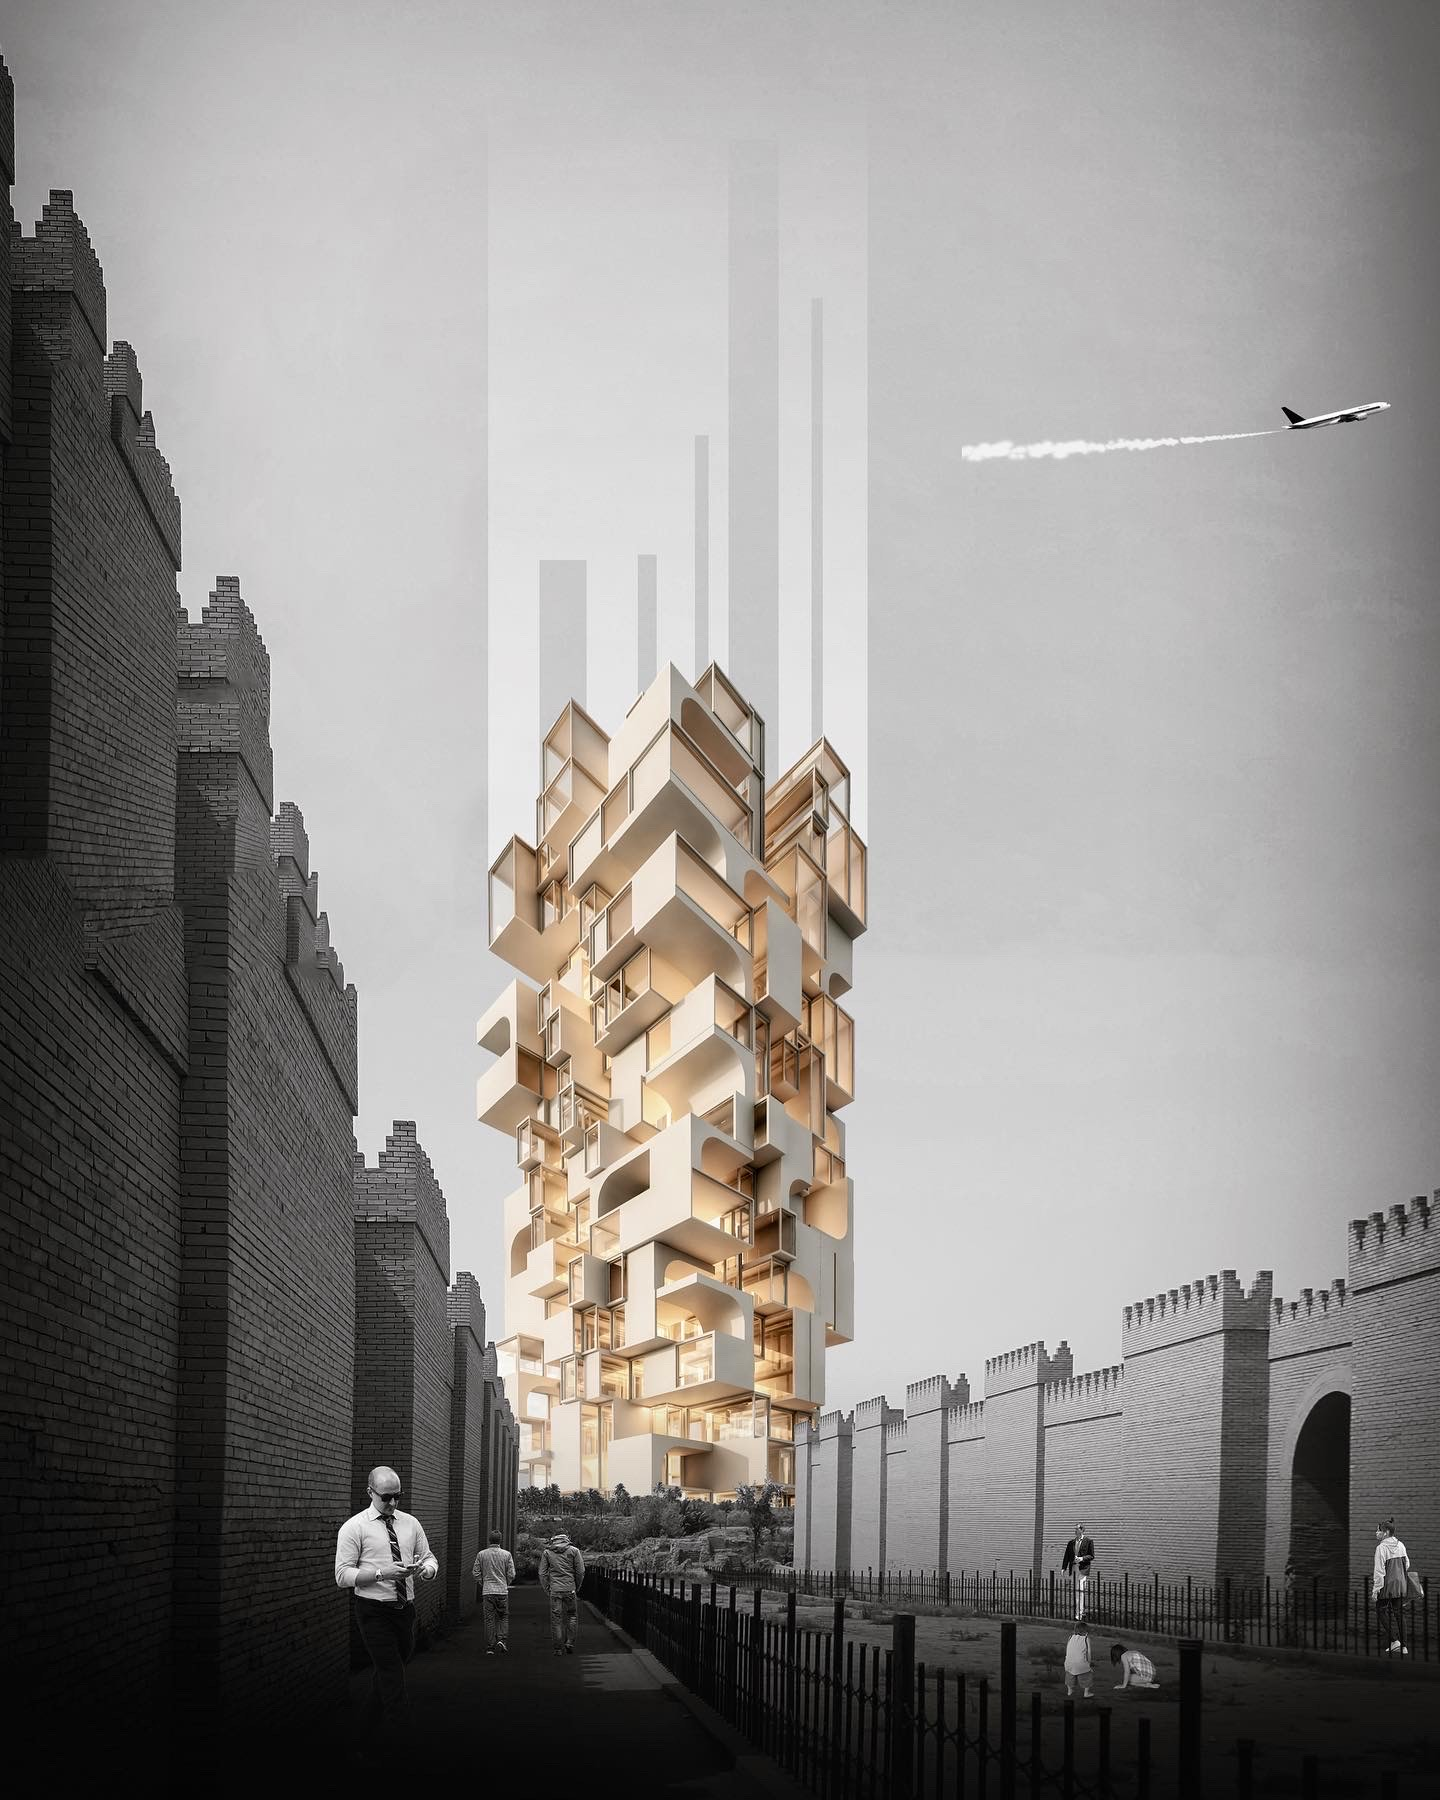 rendering image of a tower